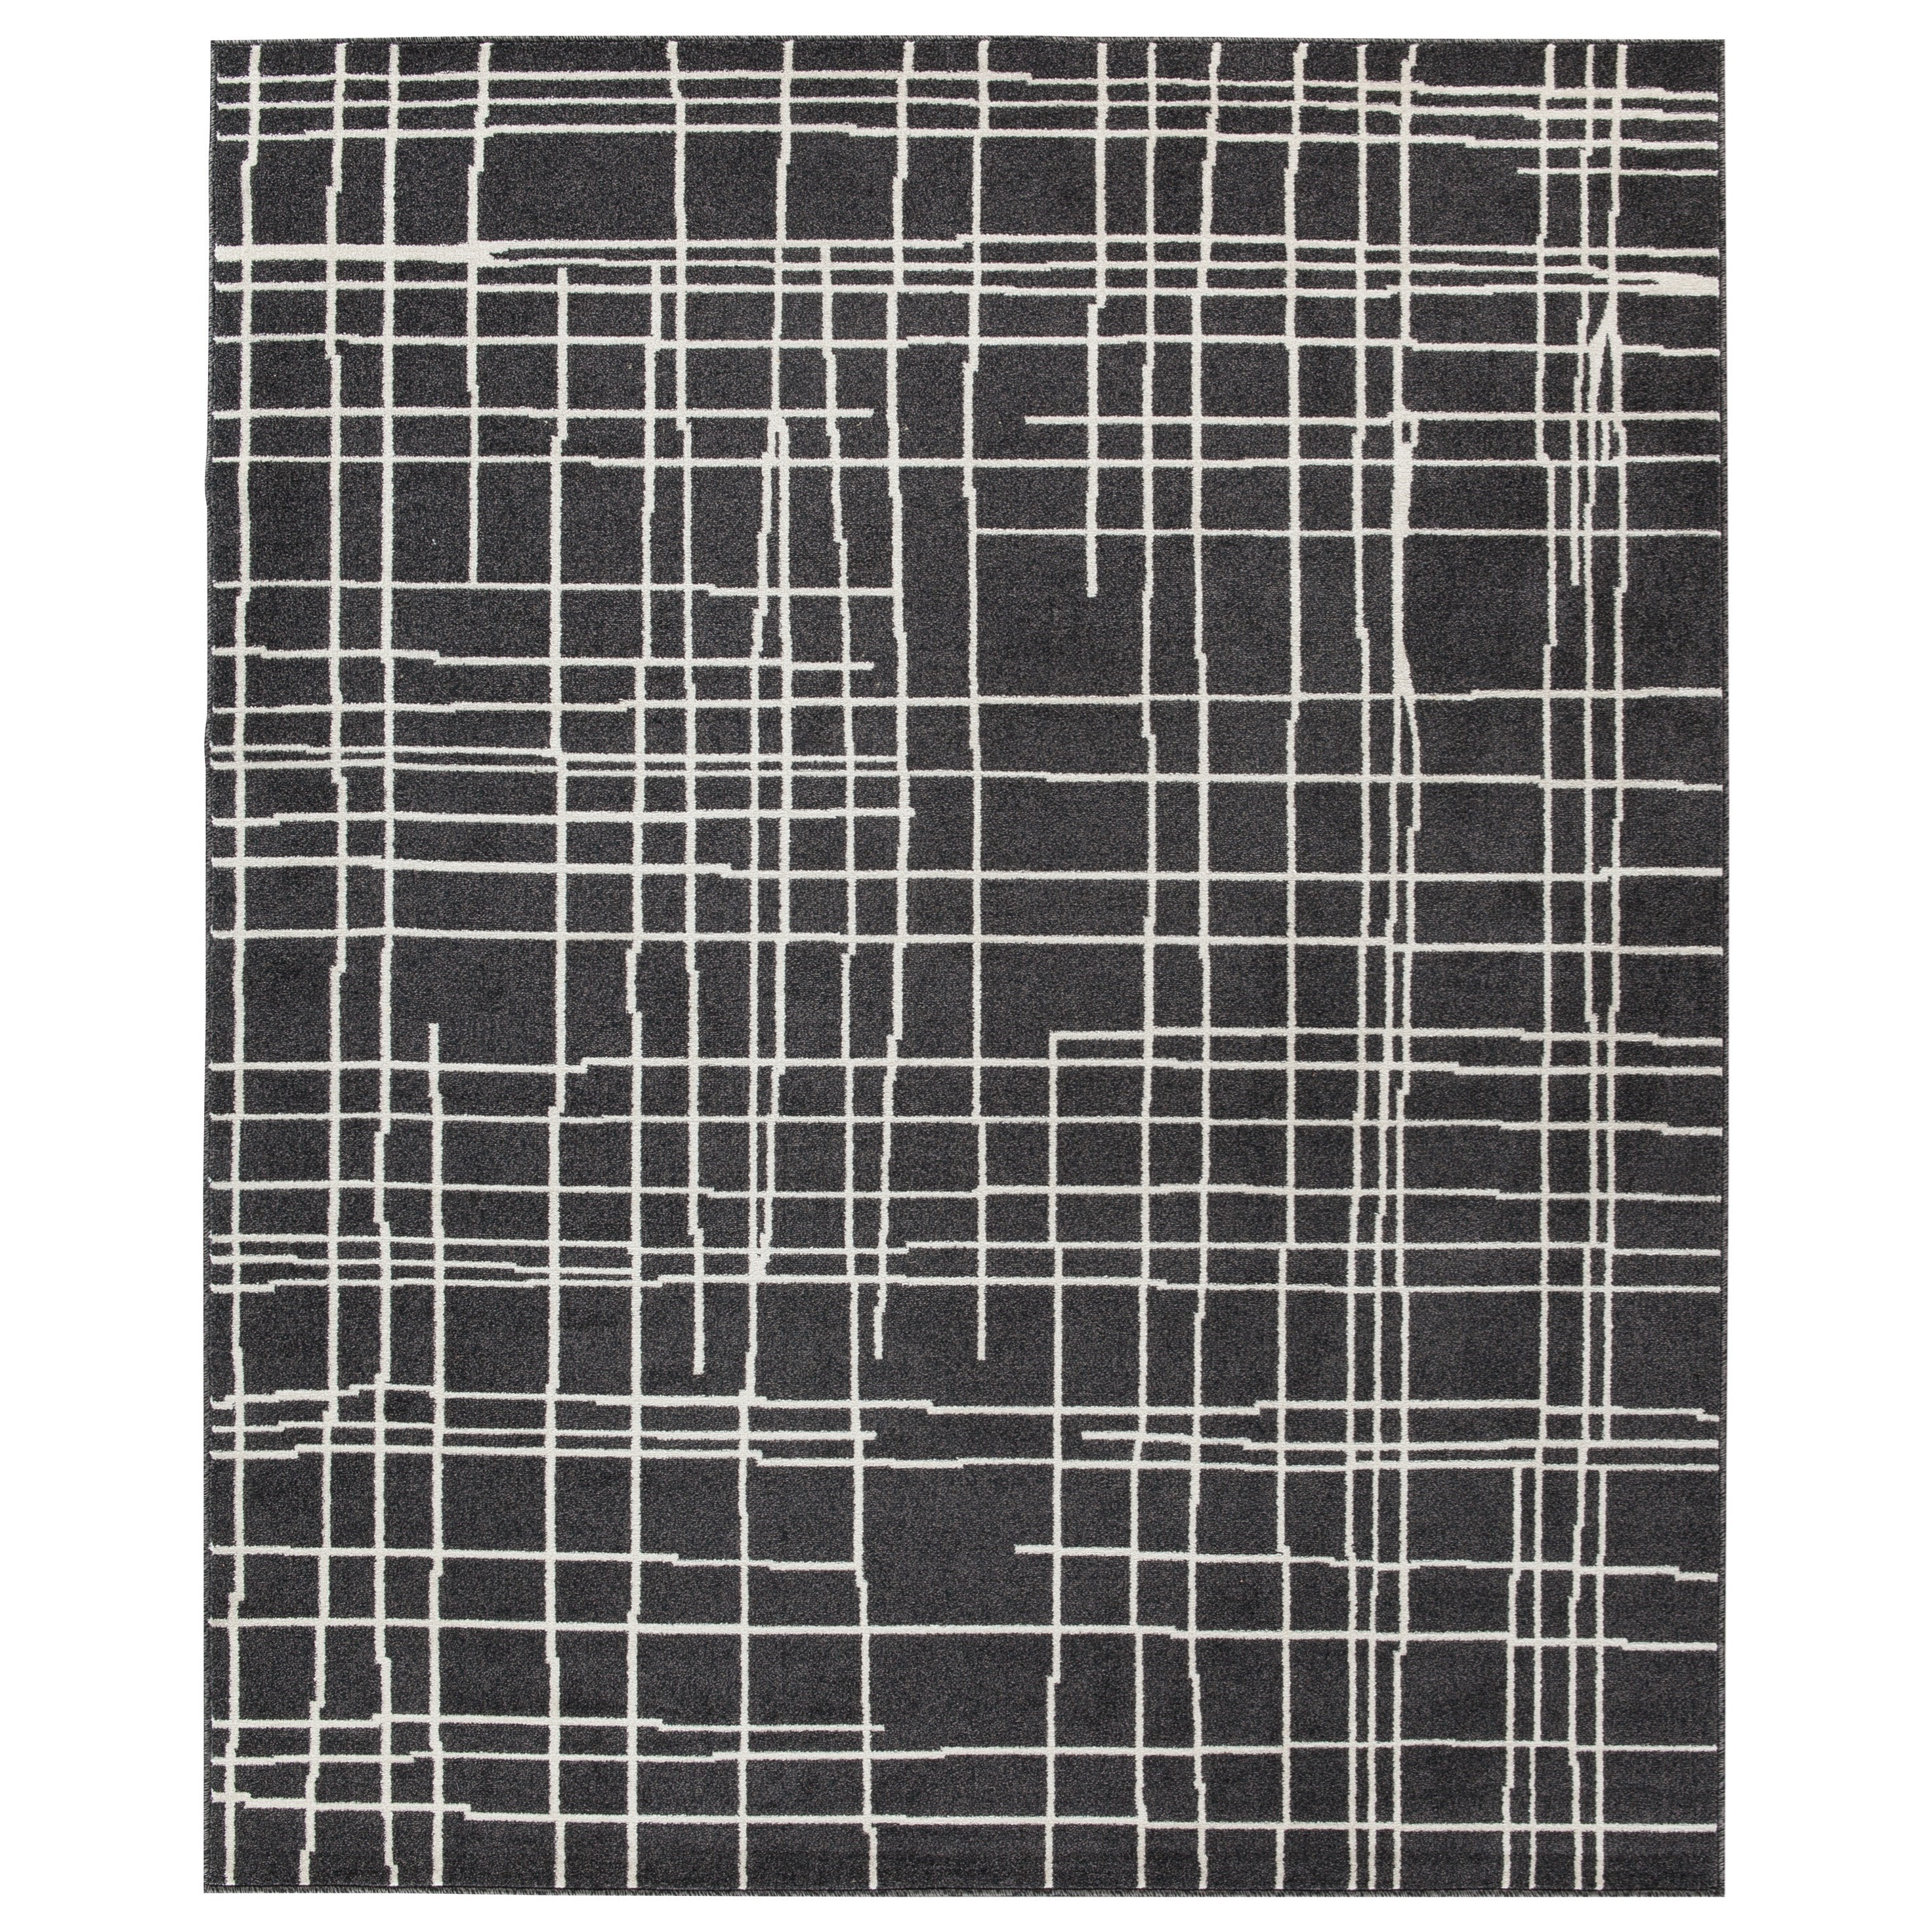 Contemporary Area Rugs Jai Black White Large Rug